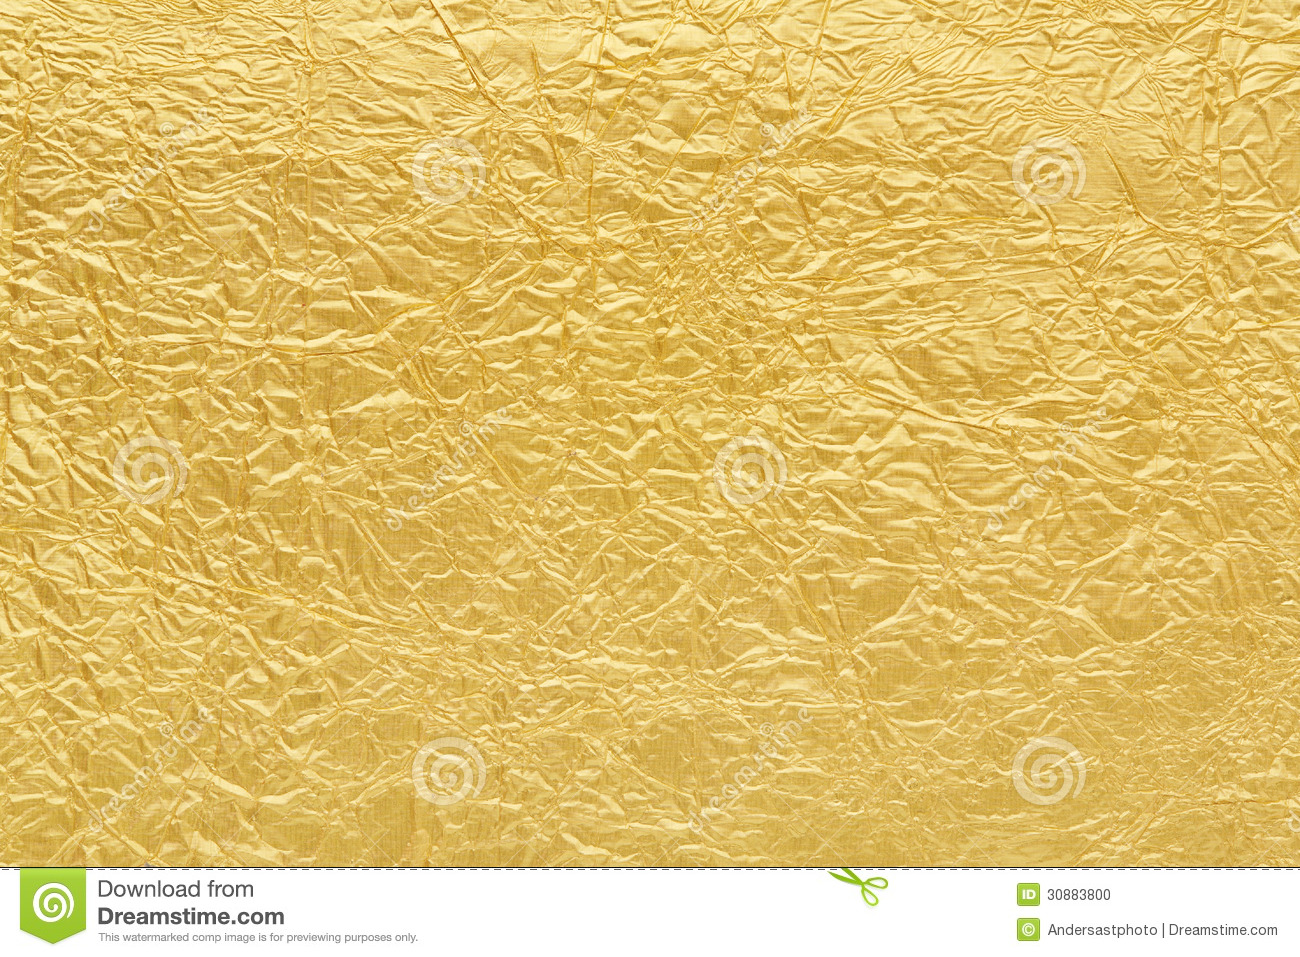 Gold foil background texture